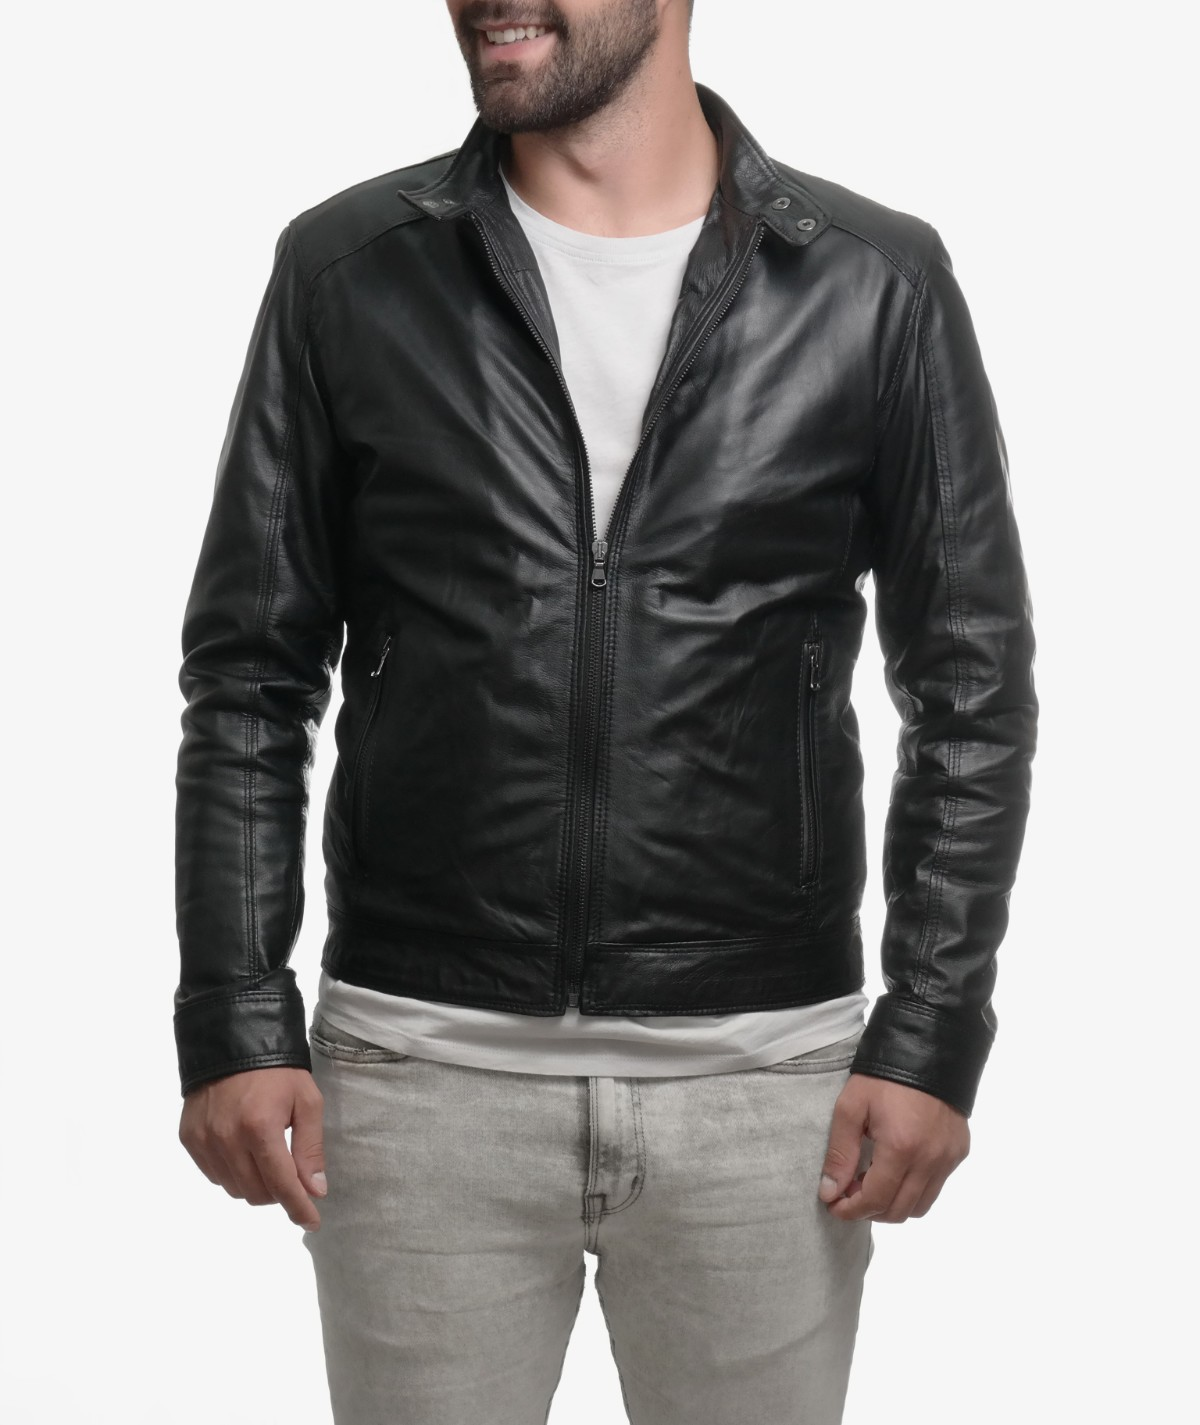 Giubbotto Biker Pelle Leather The Vera Okpelle Washed Shop In Market rvqxrSwZ